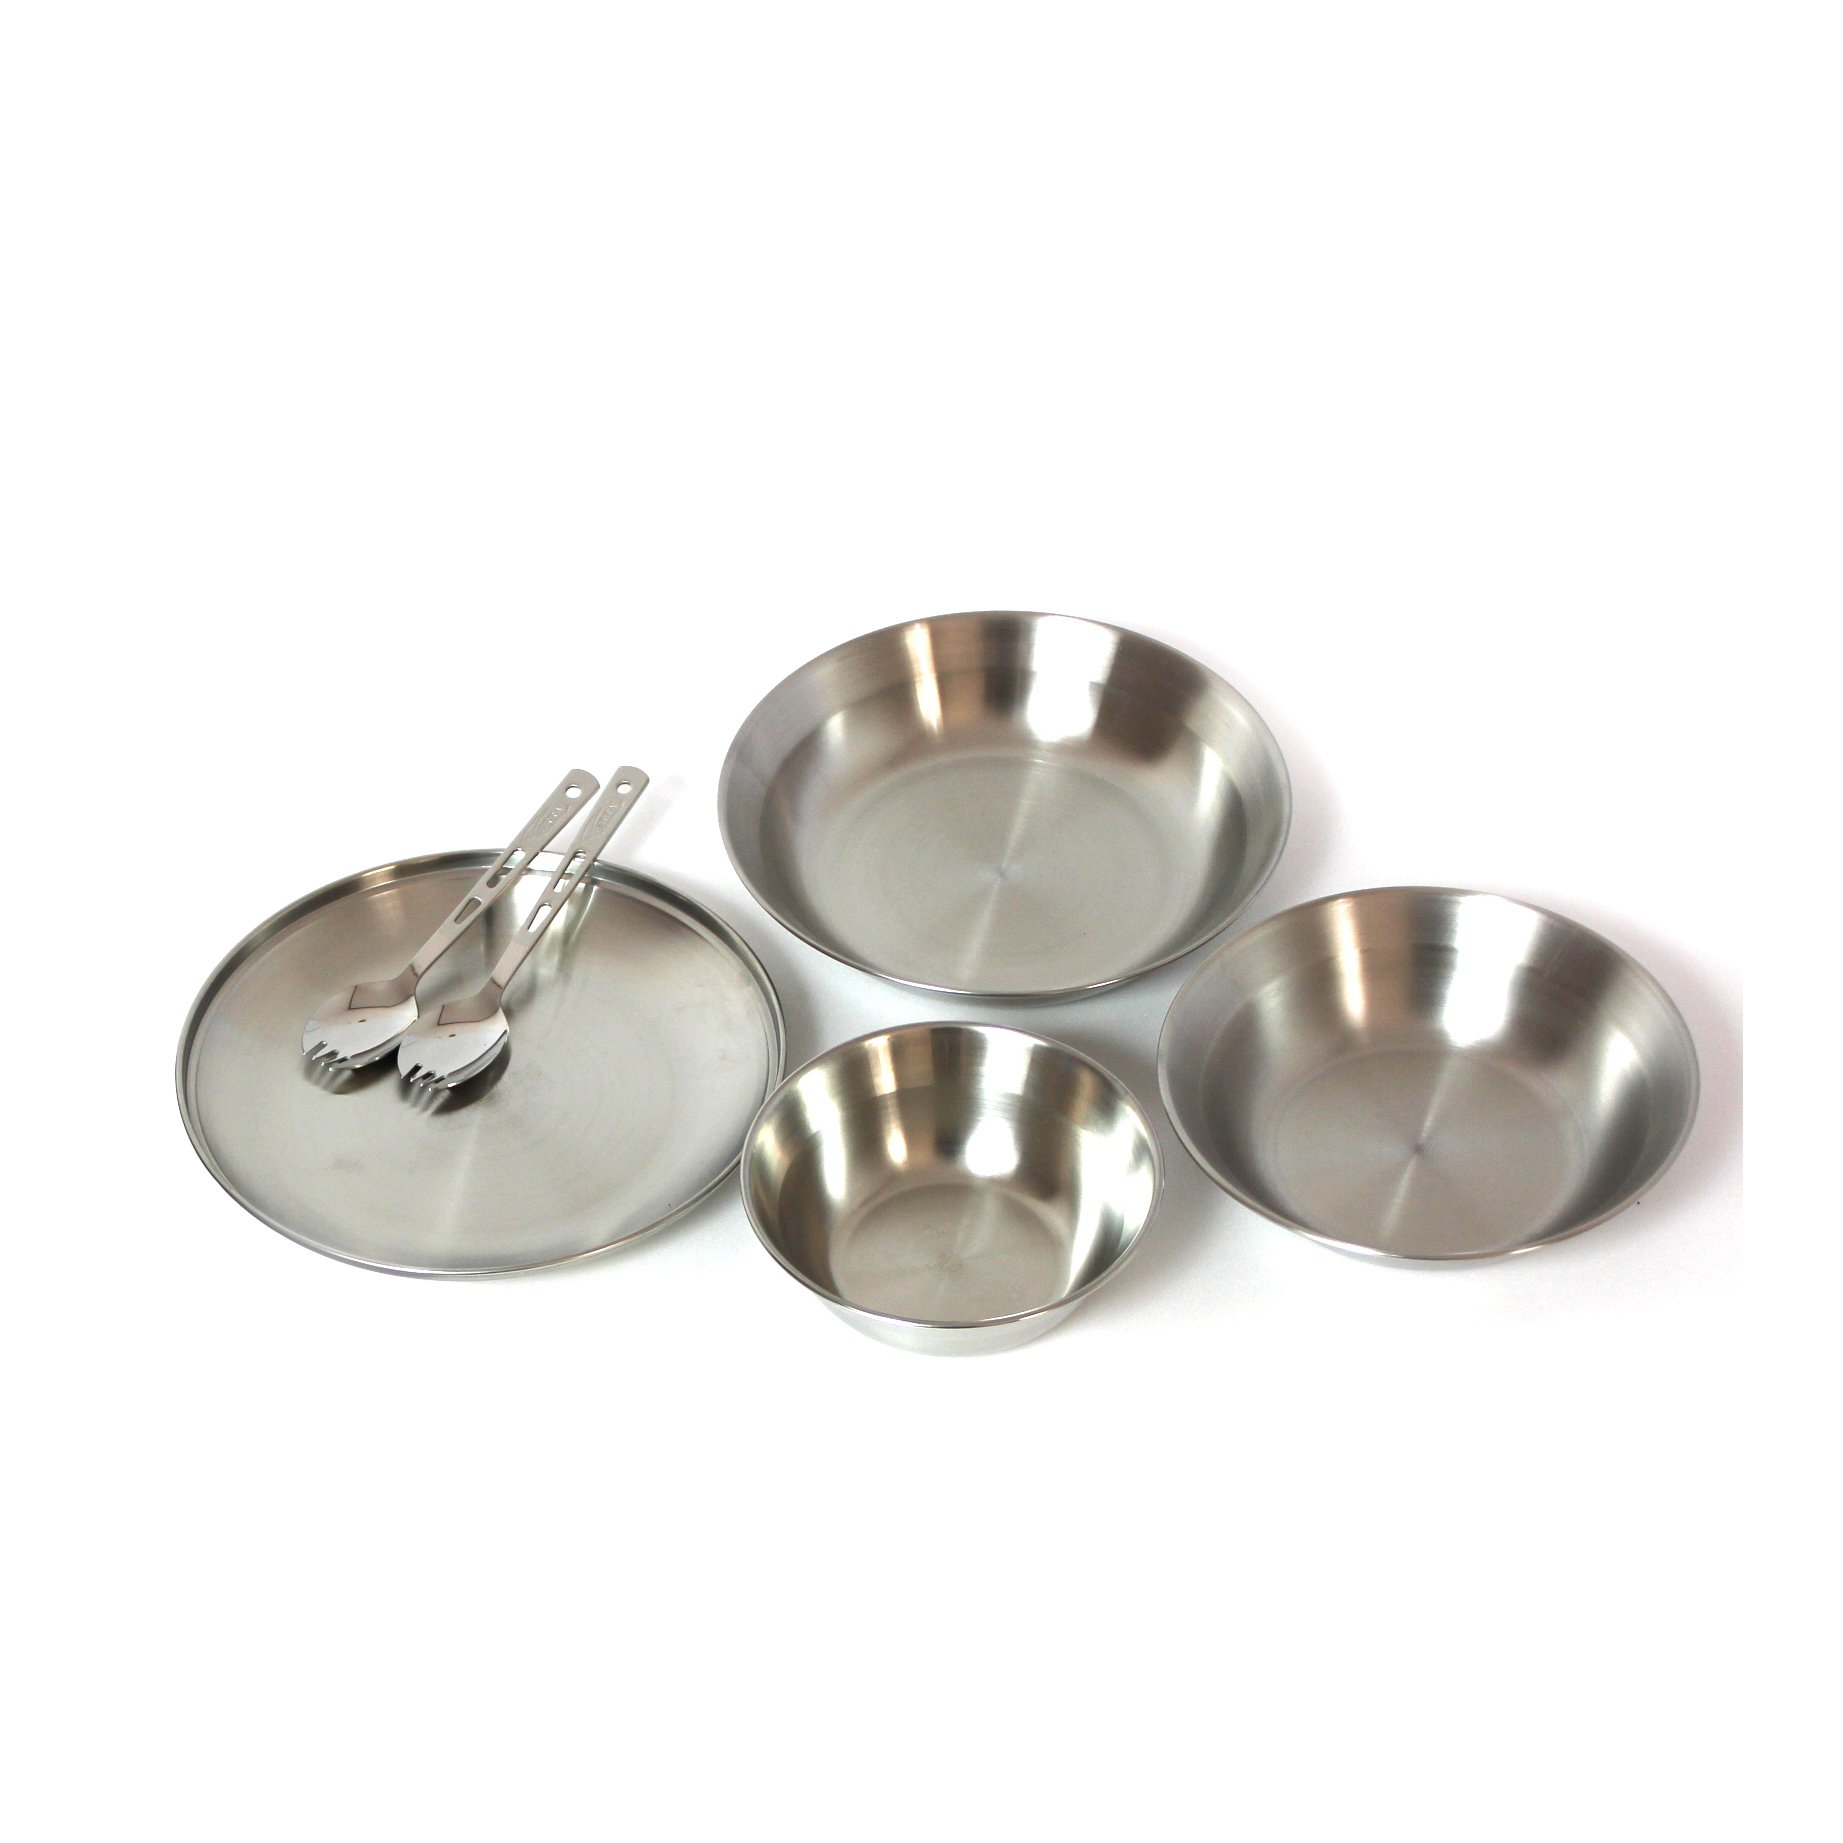 Tierra TC-0409 Stainless Steel Camping Bowl Dish Plate Spoke 6Pcs Tableware Set with Cover Outdoor Picnic Hiking Campfire